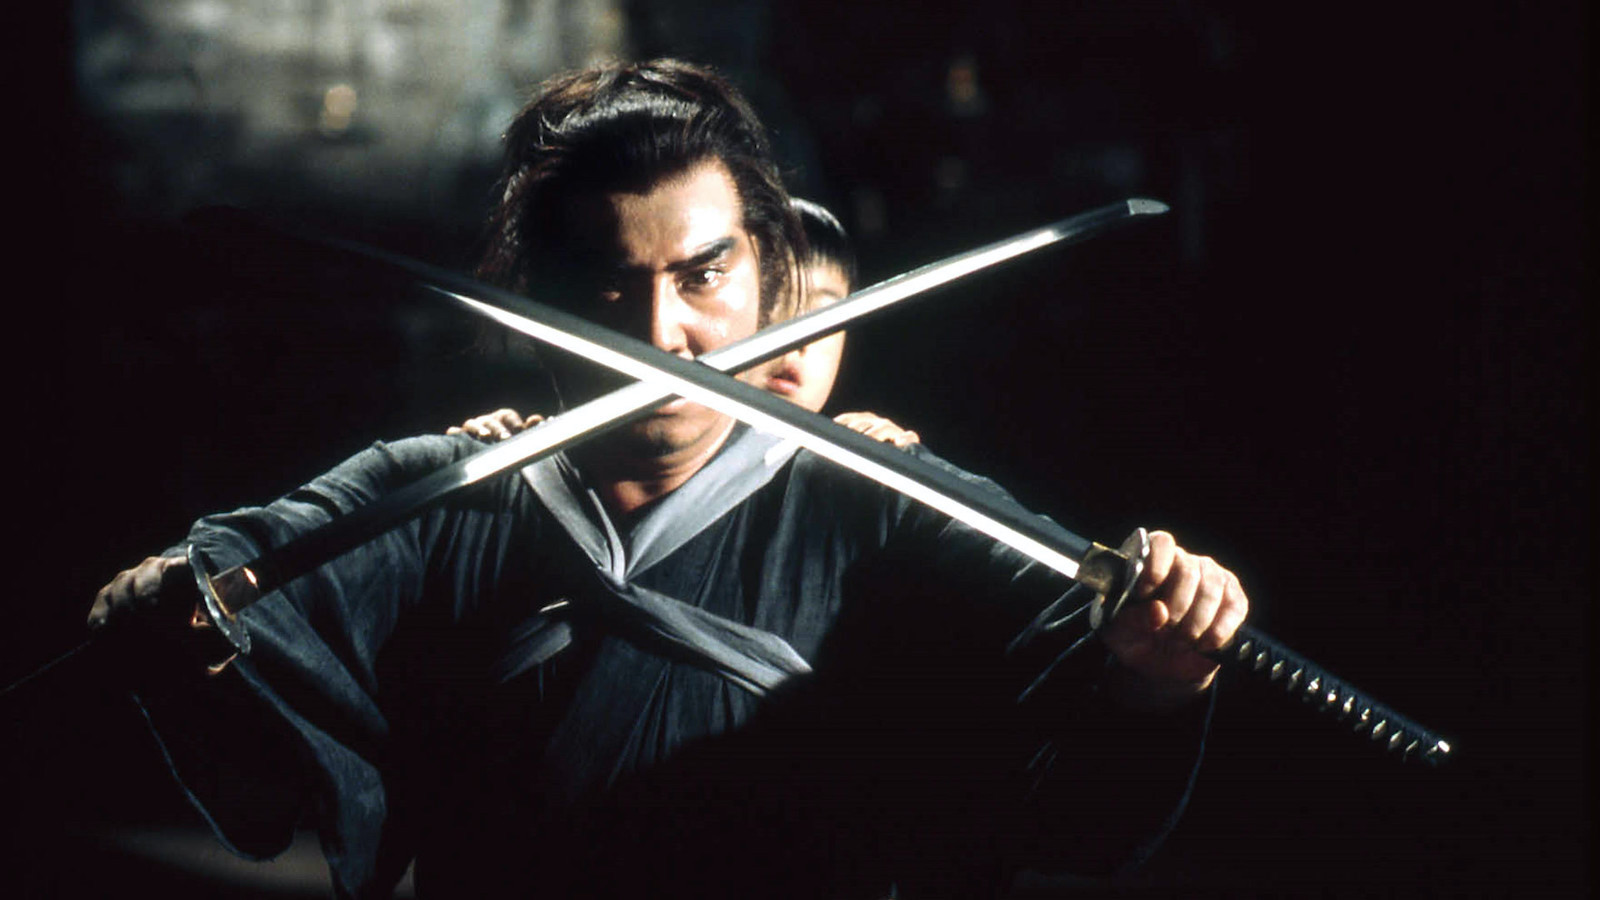 Shogun Assassin with RZA live commentary